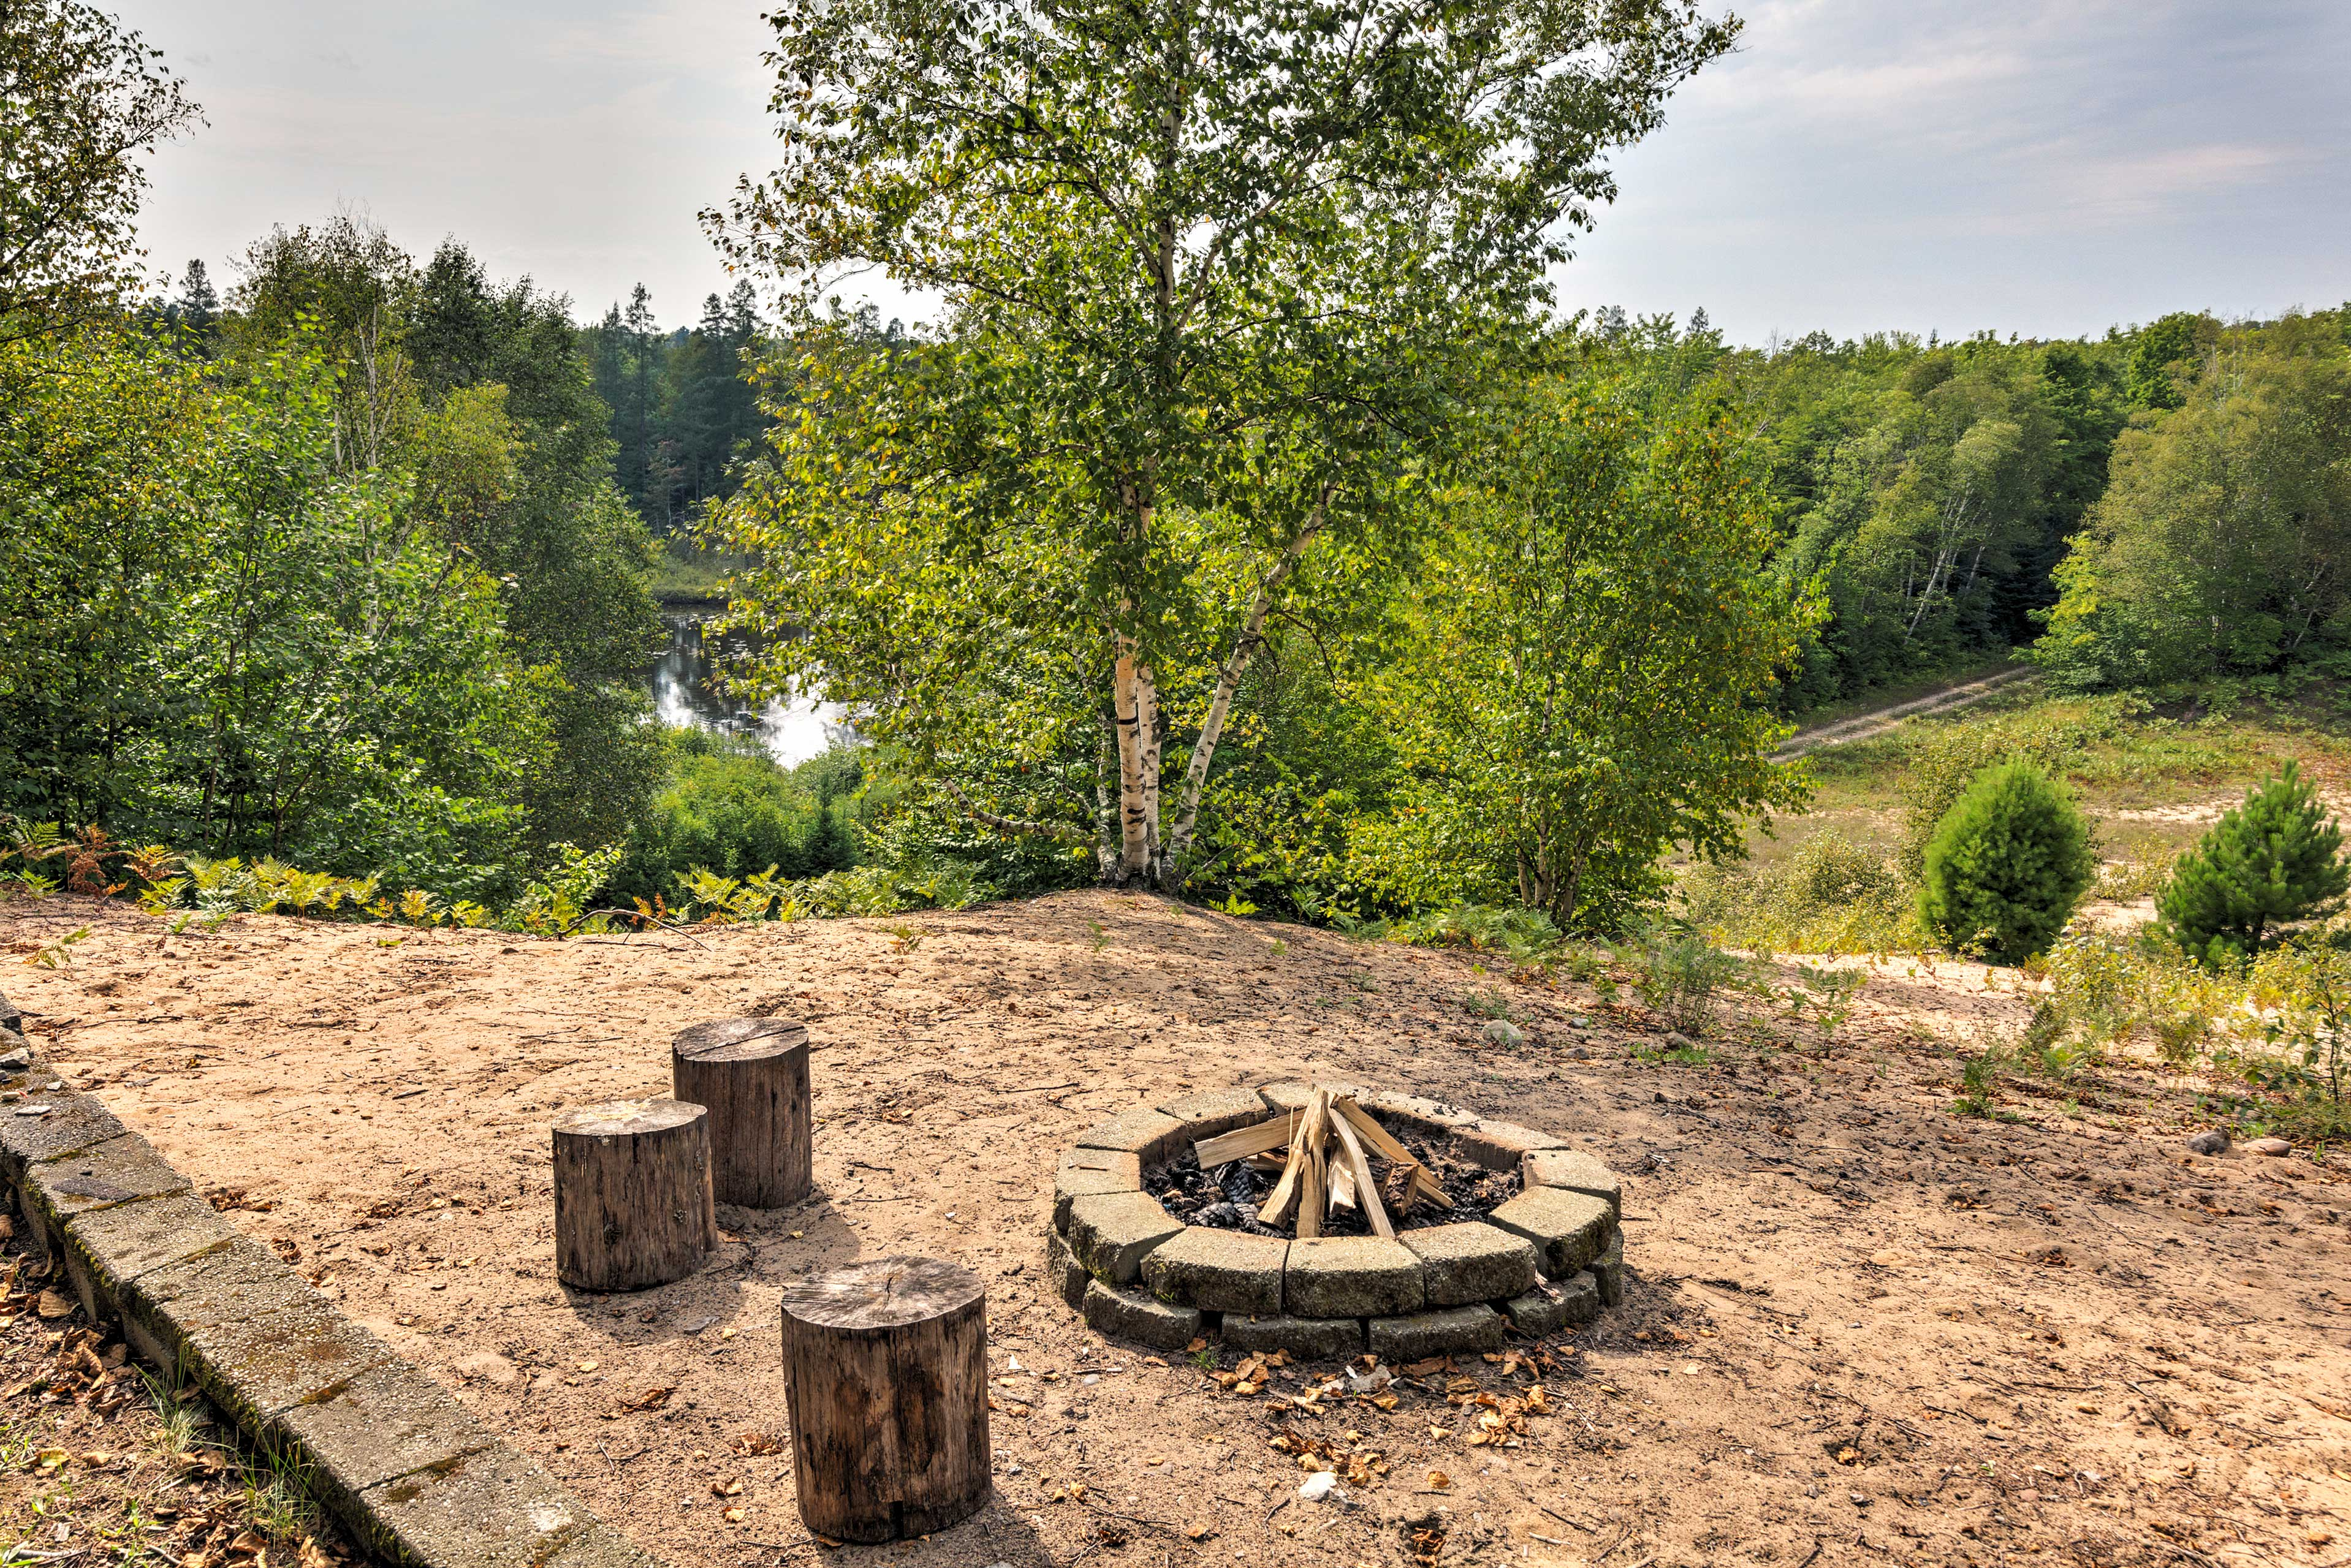 End the night with a campfire at the outdoor fire pit.